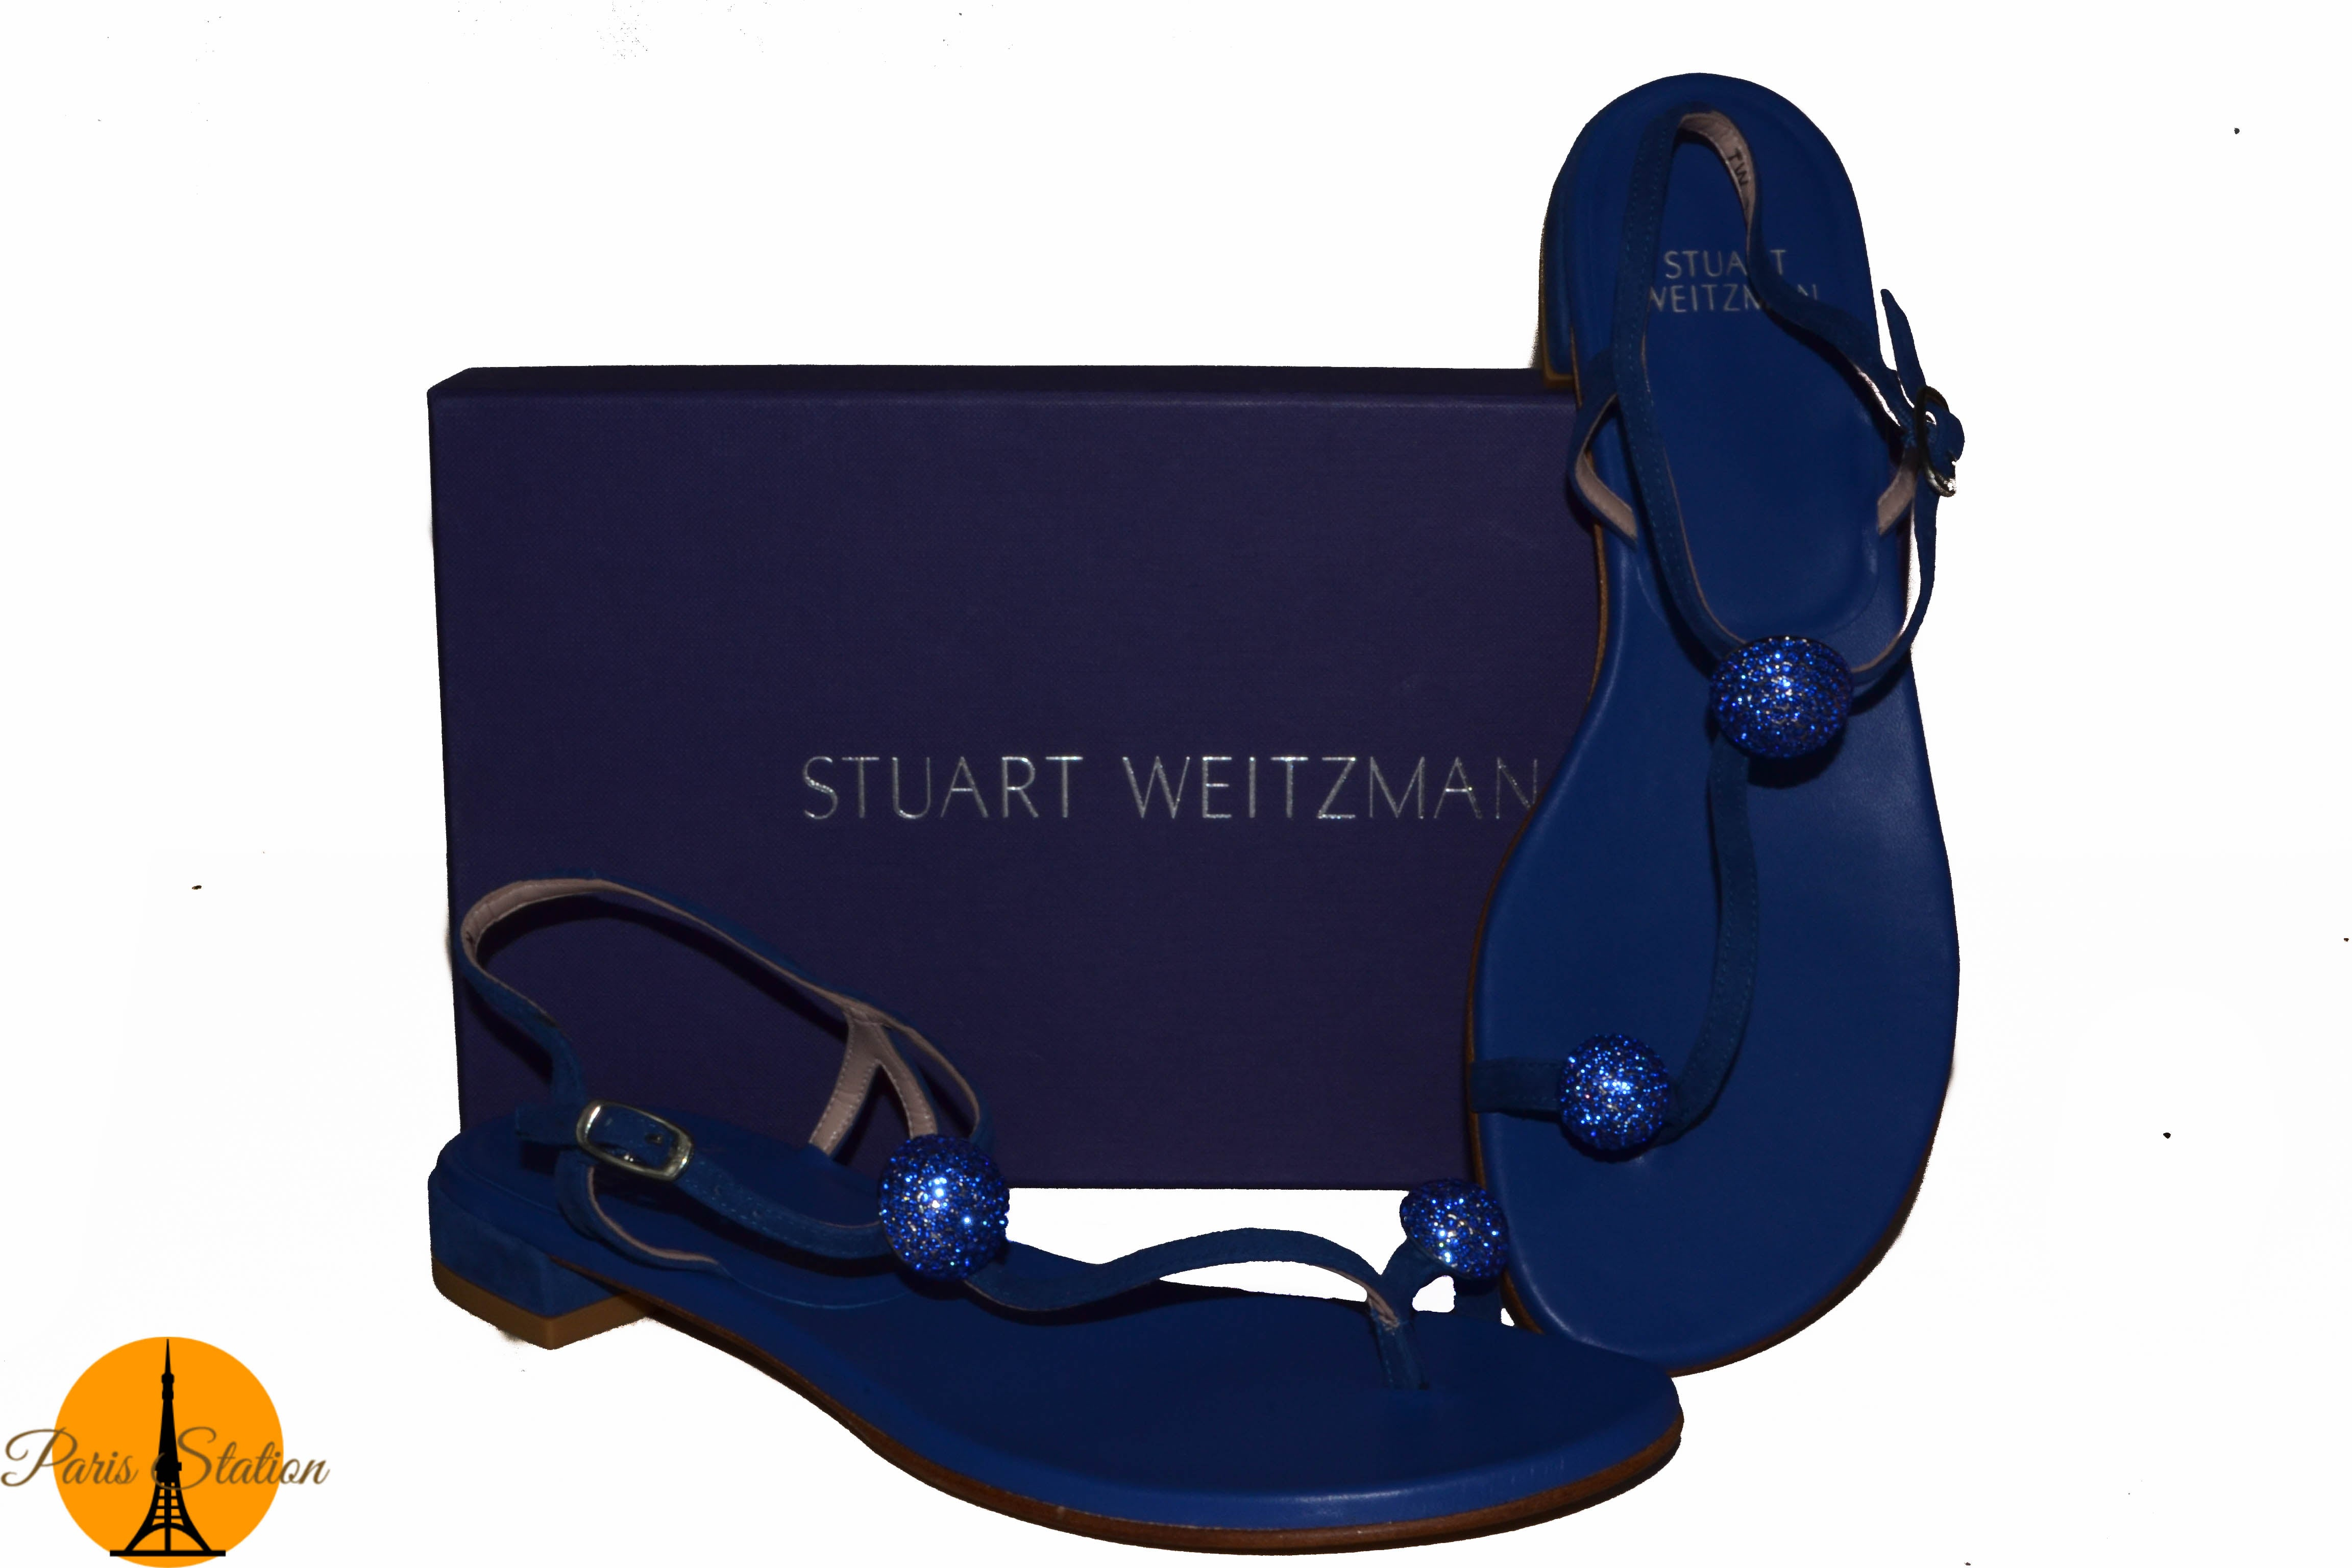 Authentic Blue Stuart Weitzman Balls of Fire Swarovski Sandals Size 8M